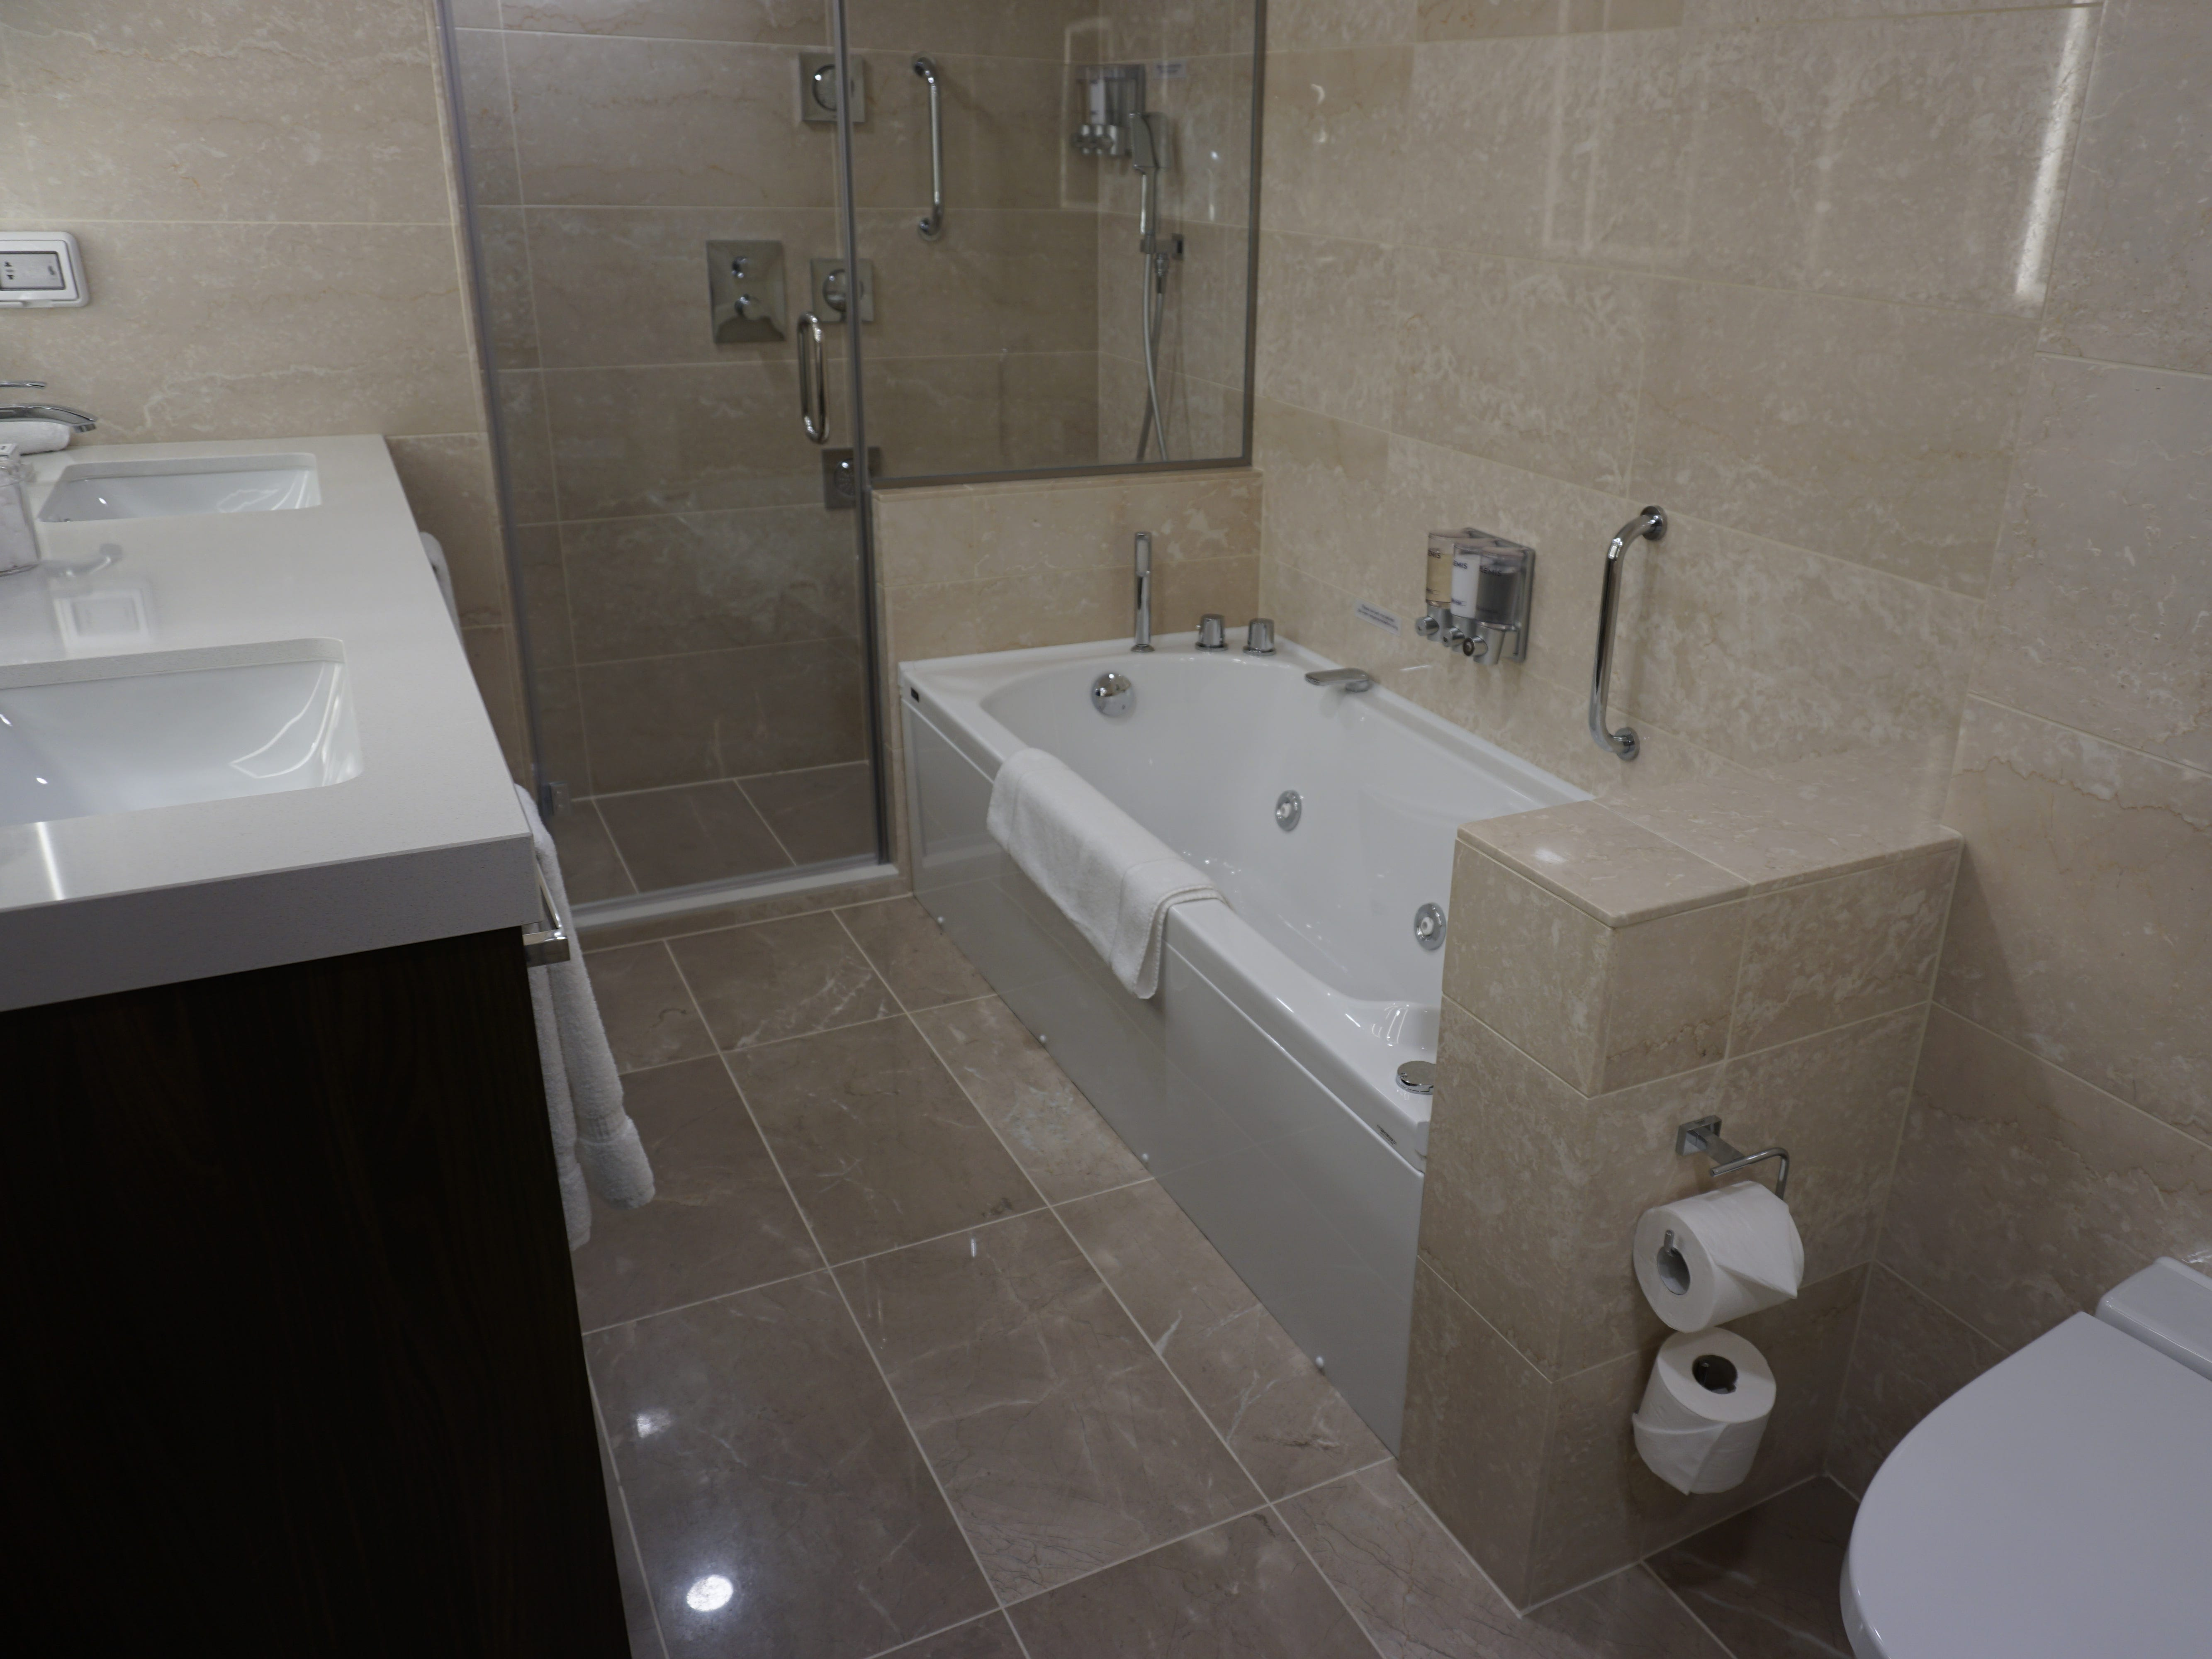 Neptune Suite bathrooms are lined in marble and feature a large Jacuzzi tub, a separate shower compartment and twin sinks.